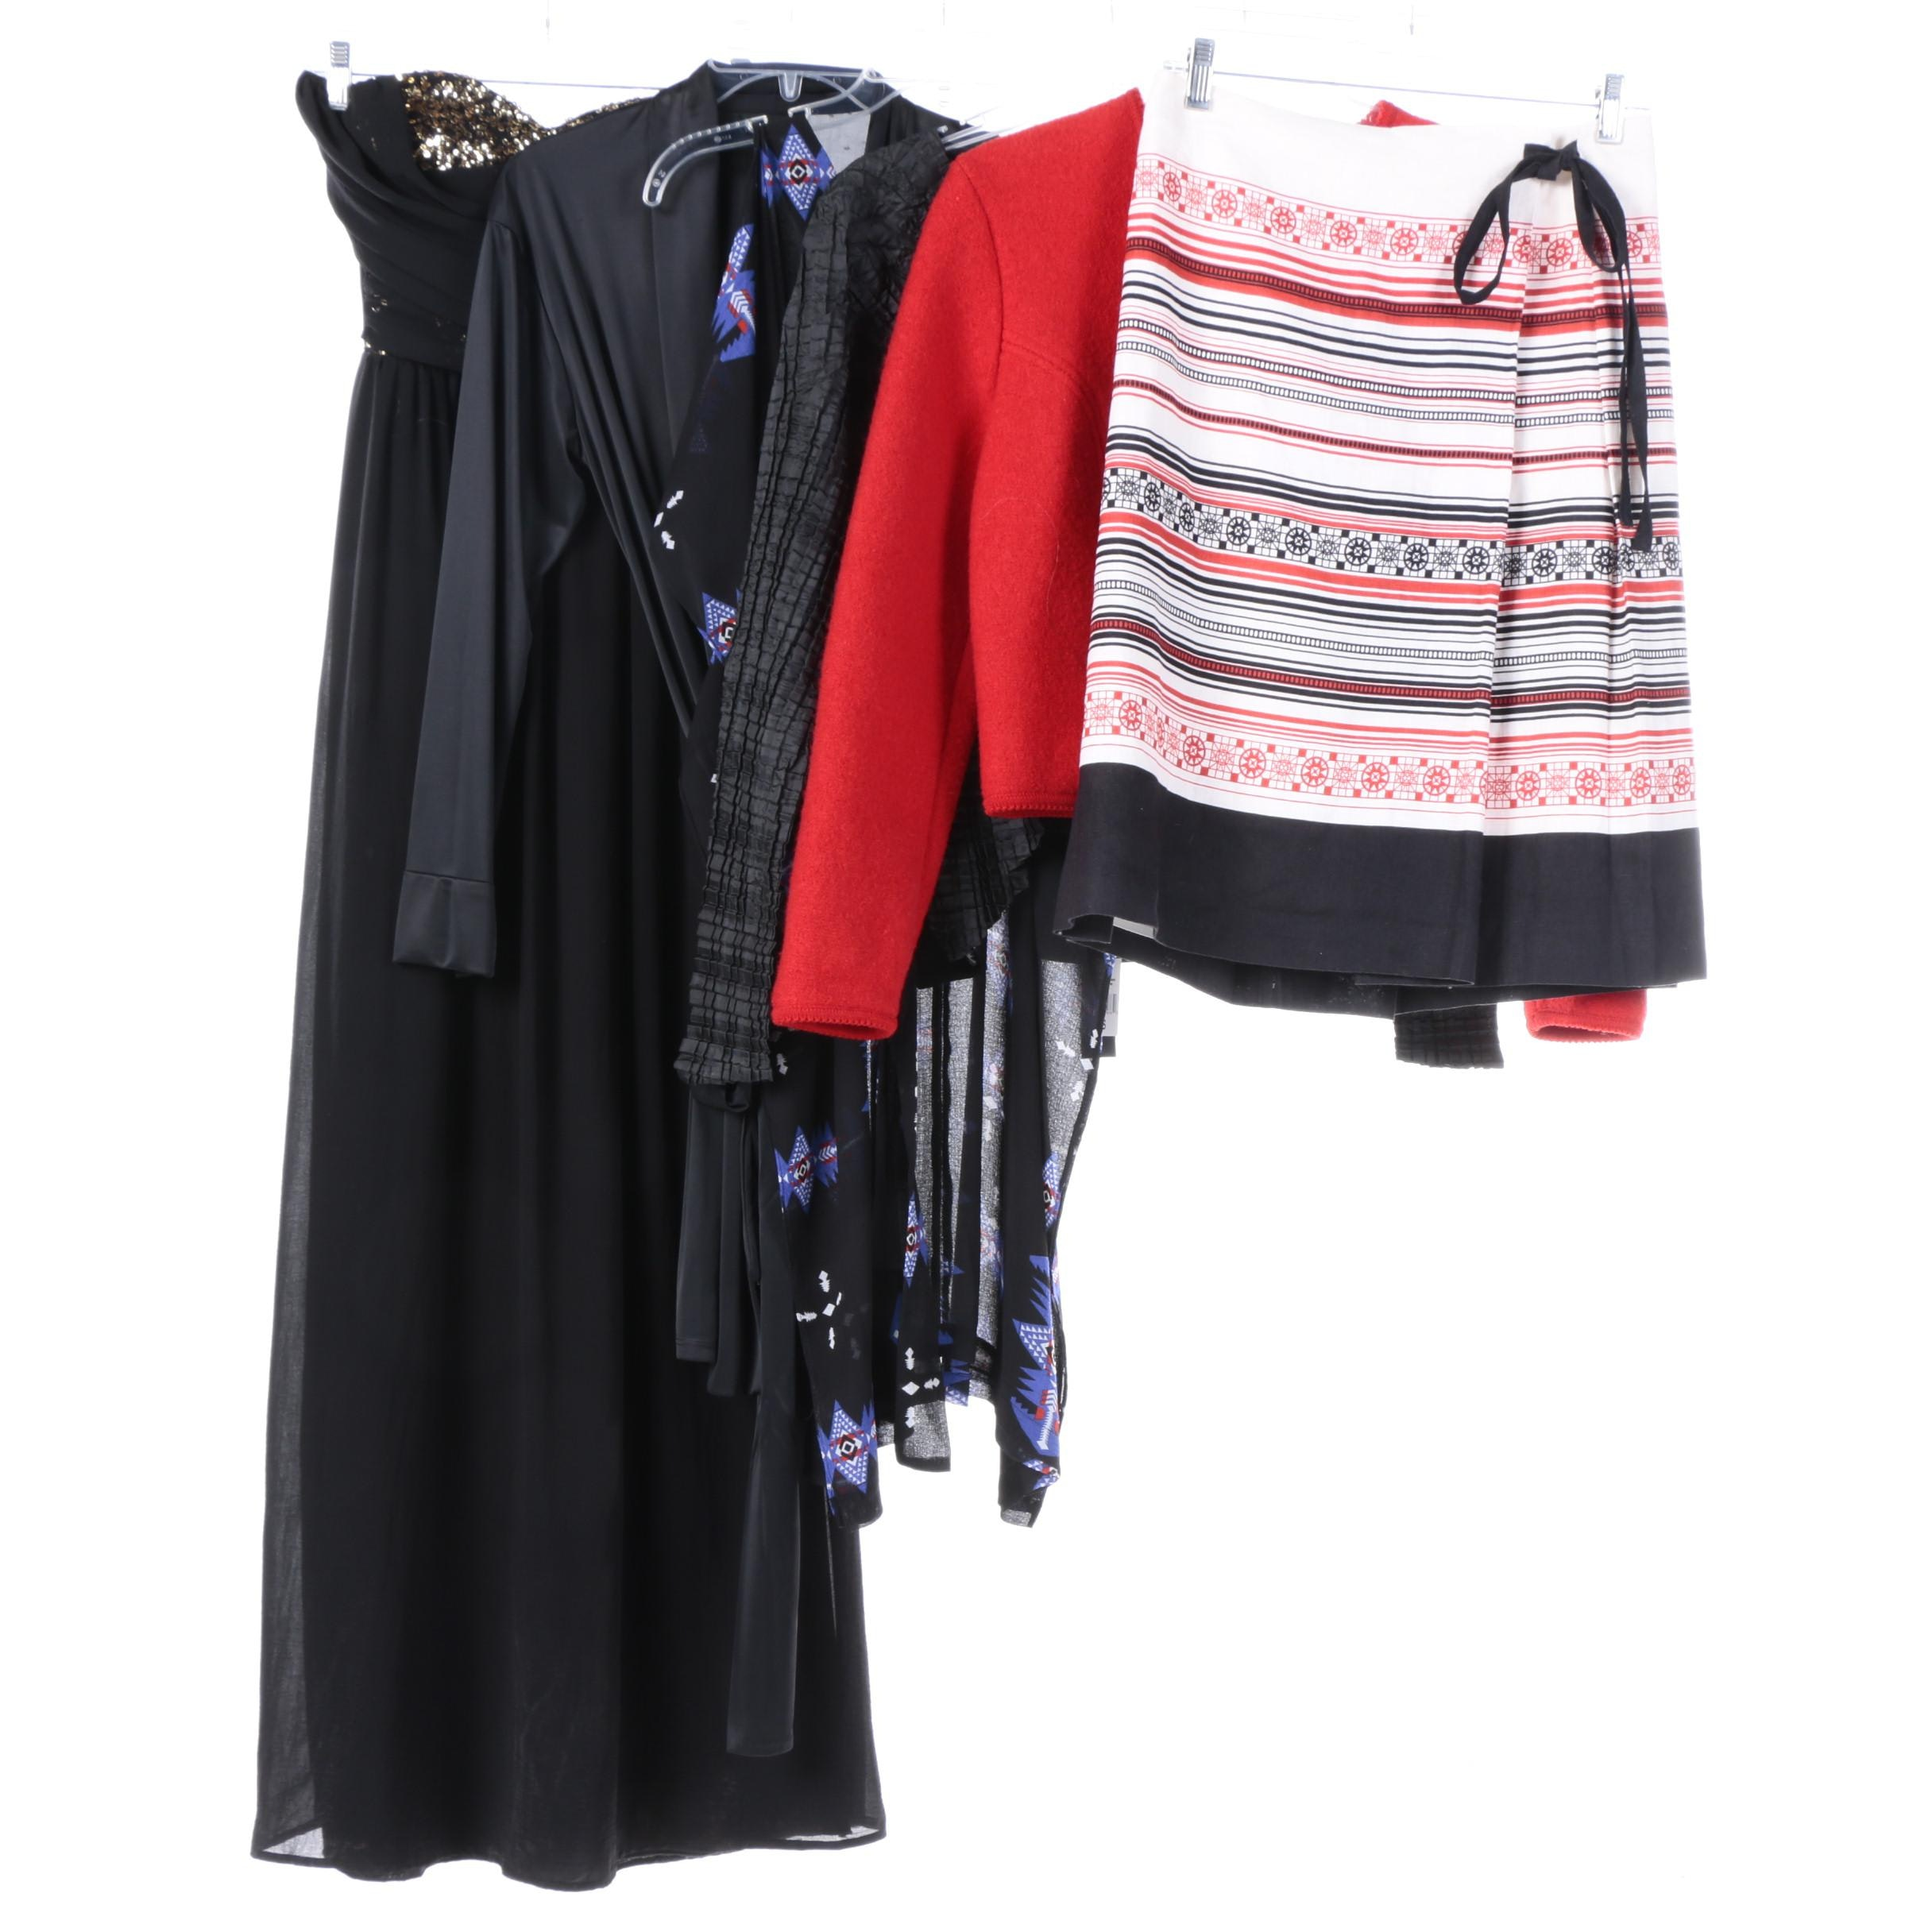 Women's Dresses and Separates Including Geiger, Saks Fifth Avenue